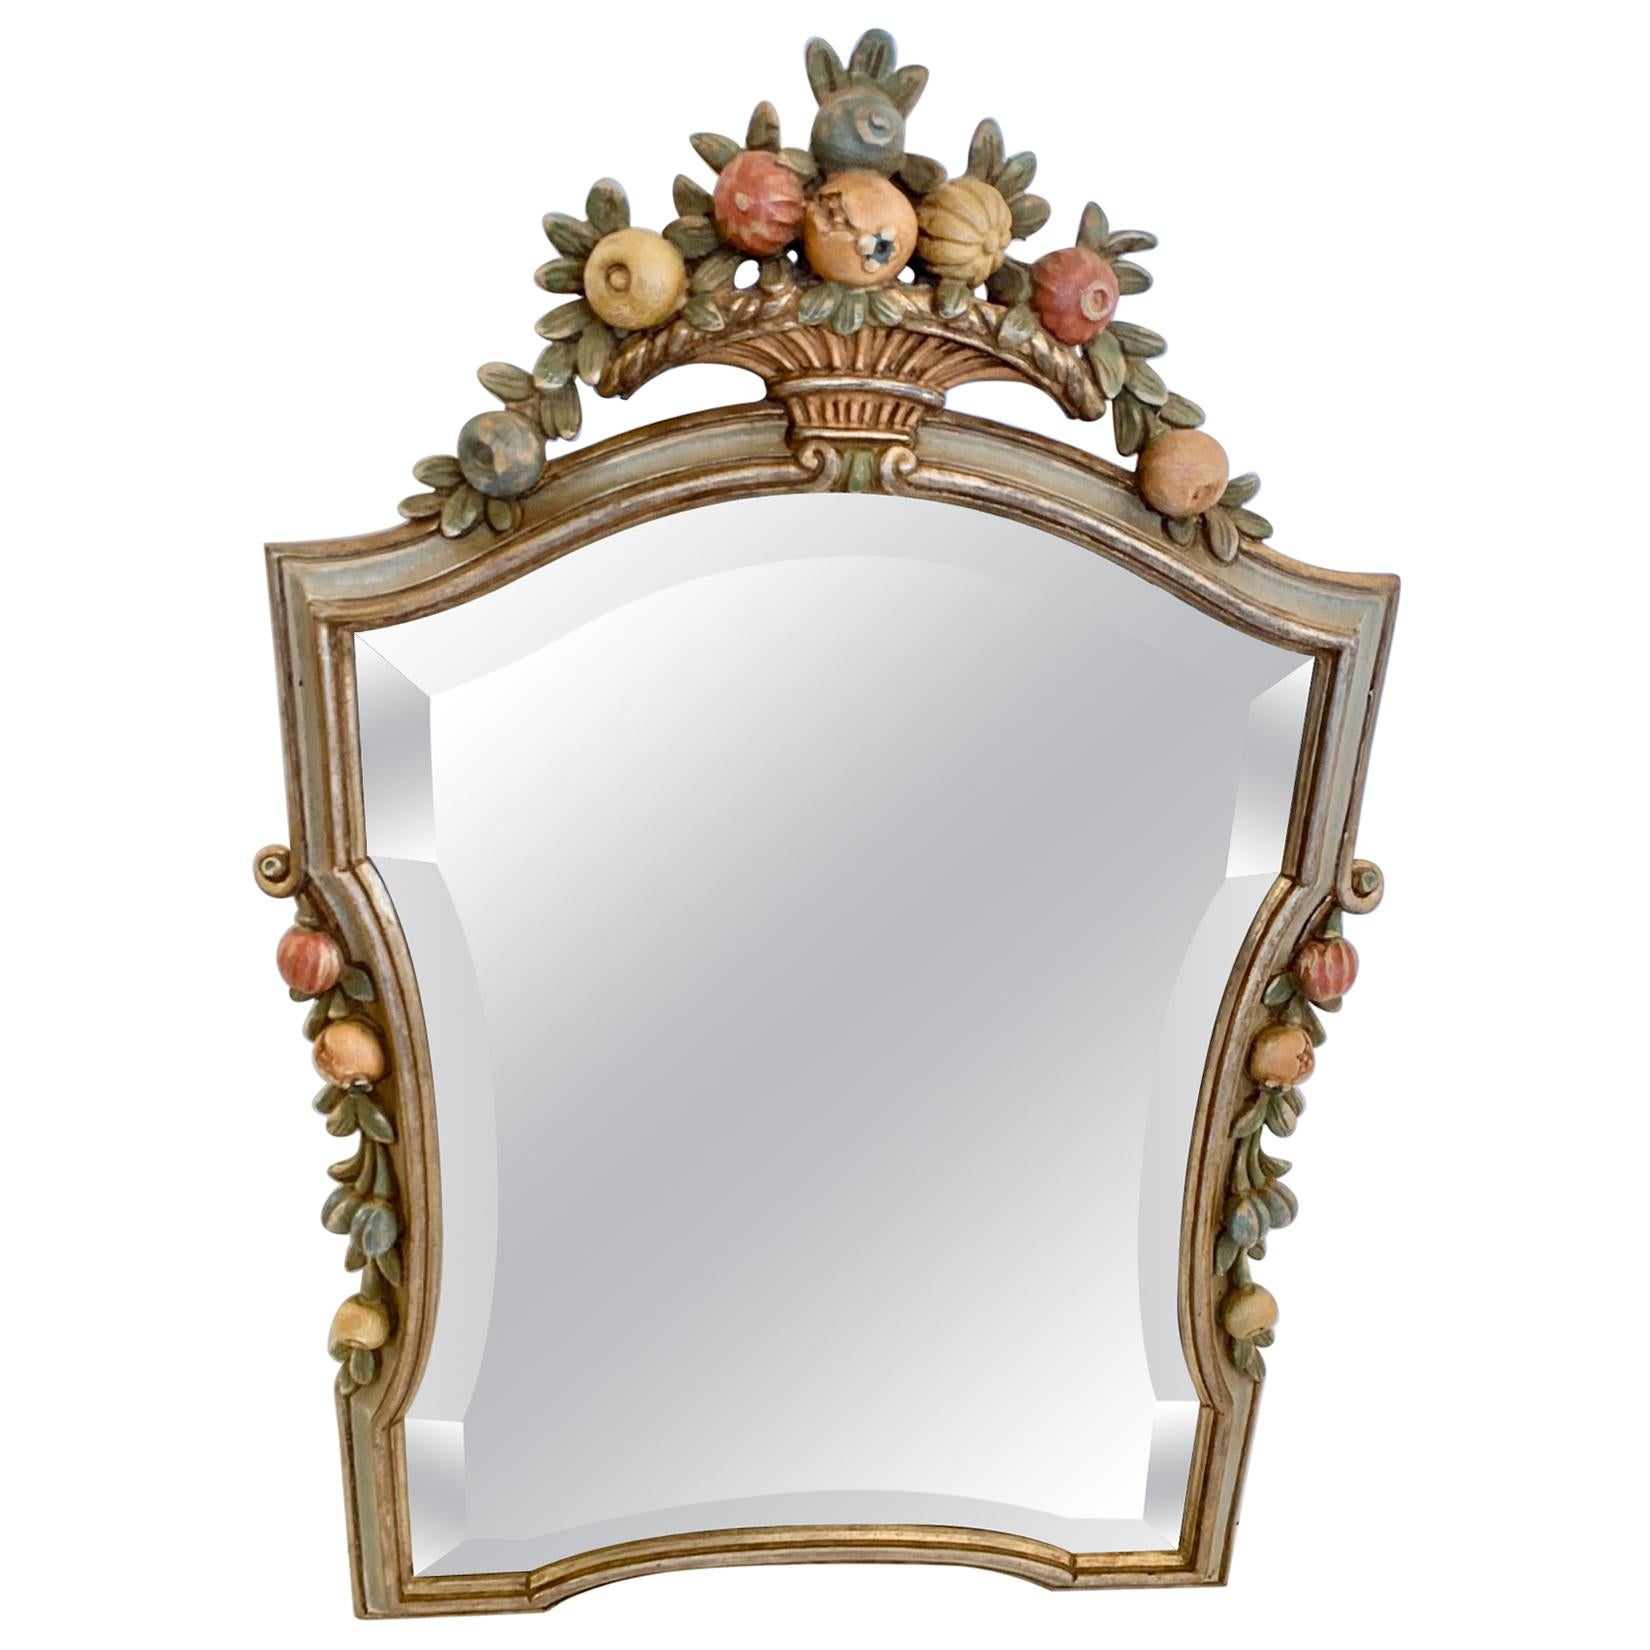 Charming Italian Carved Wood and Painted Mirror